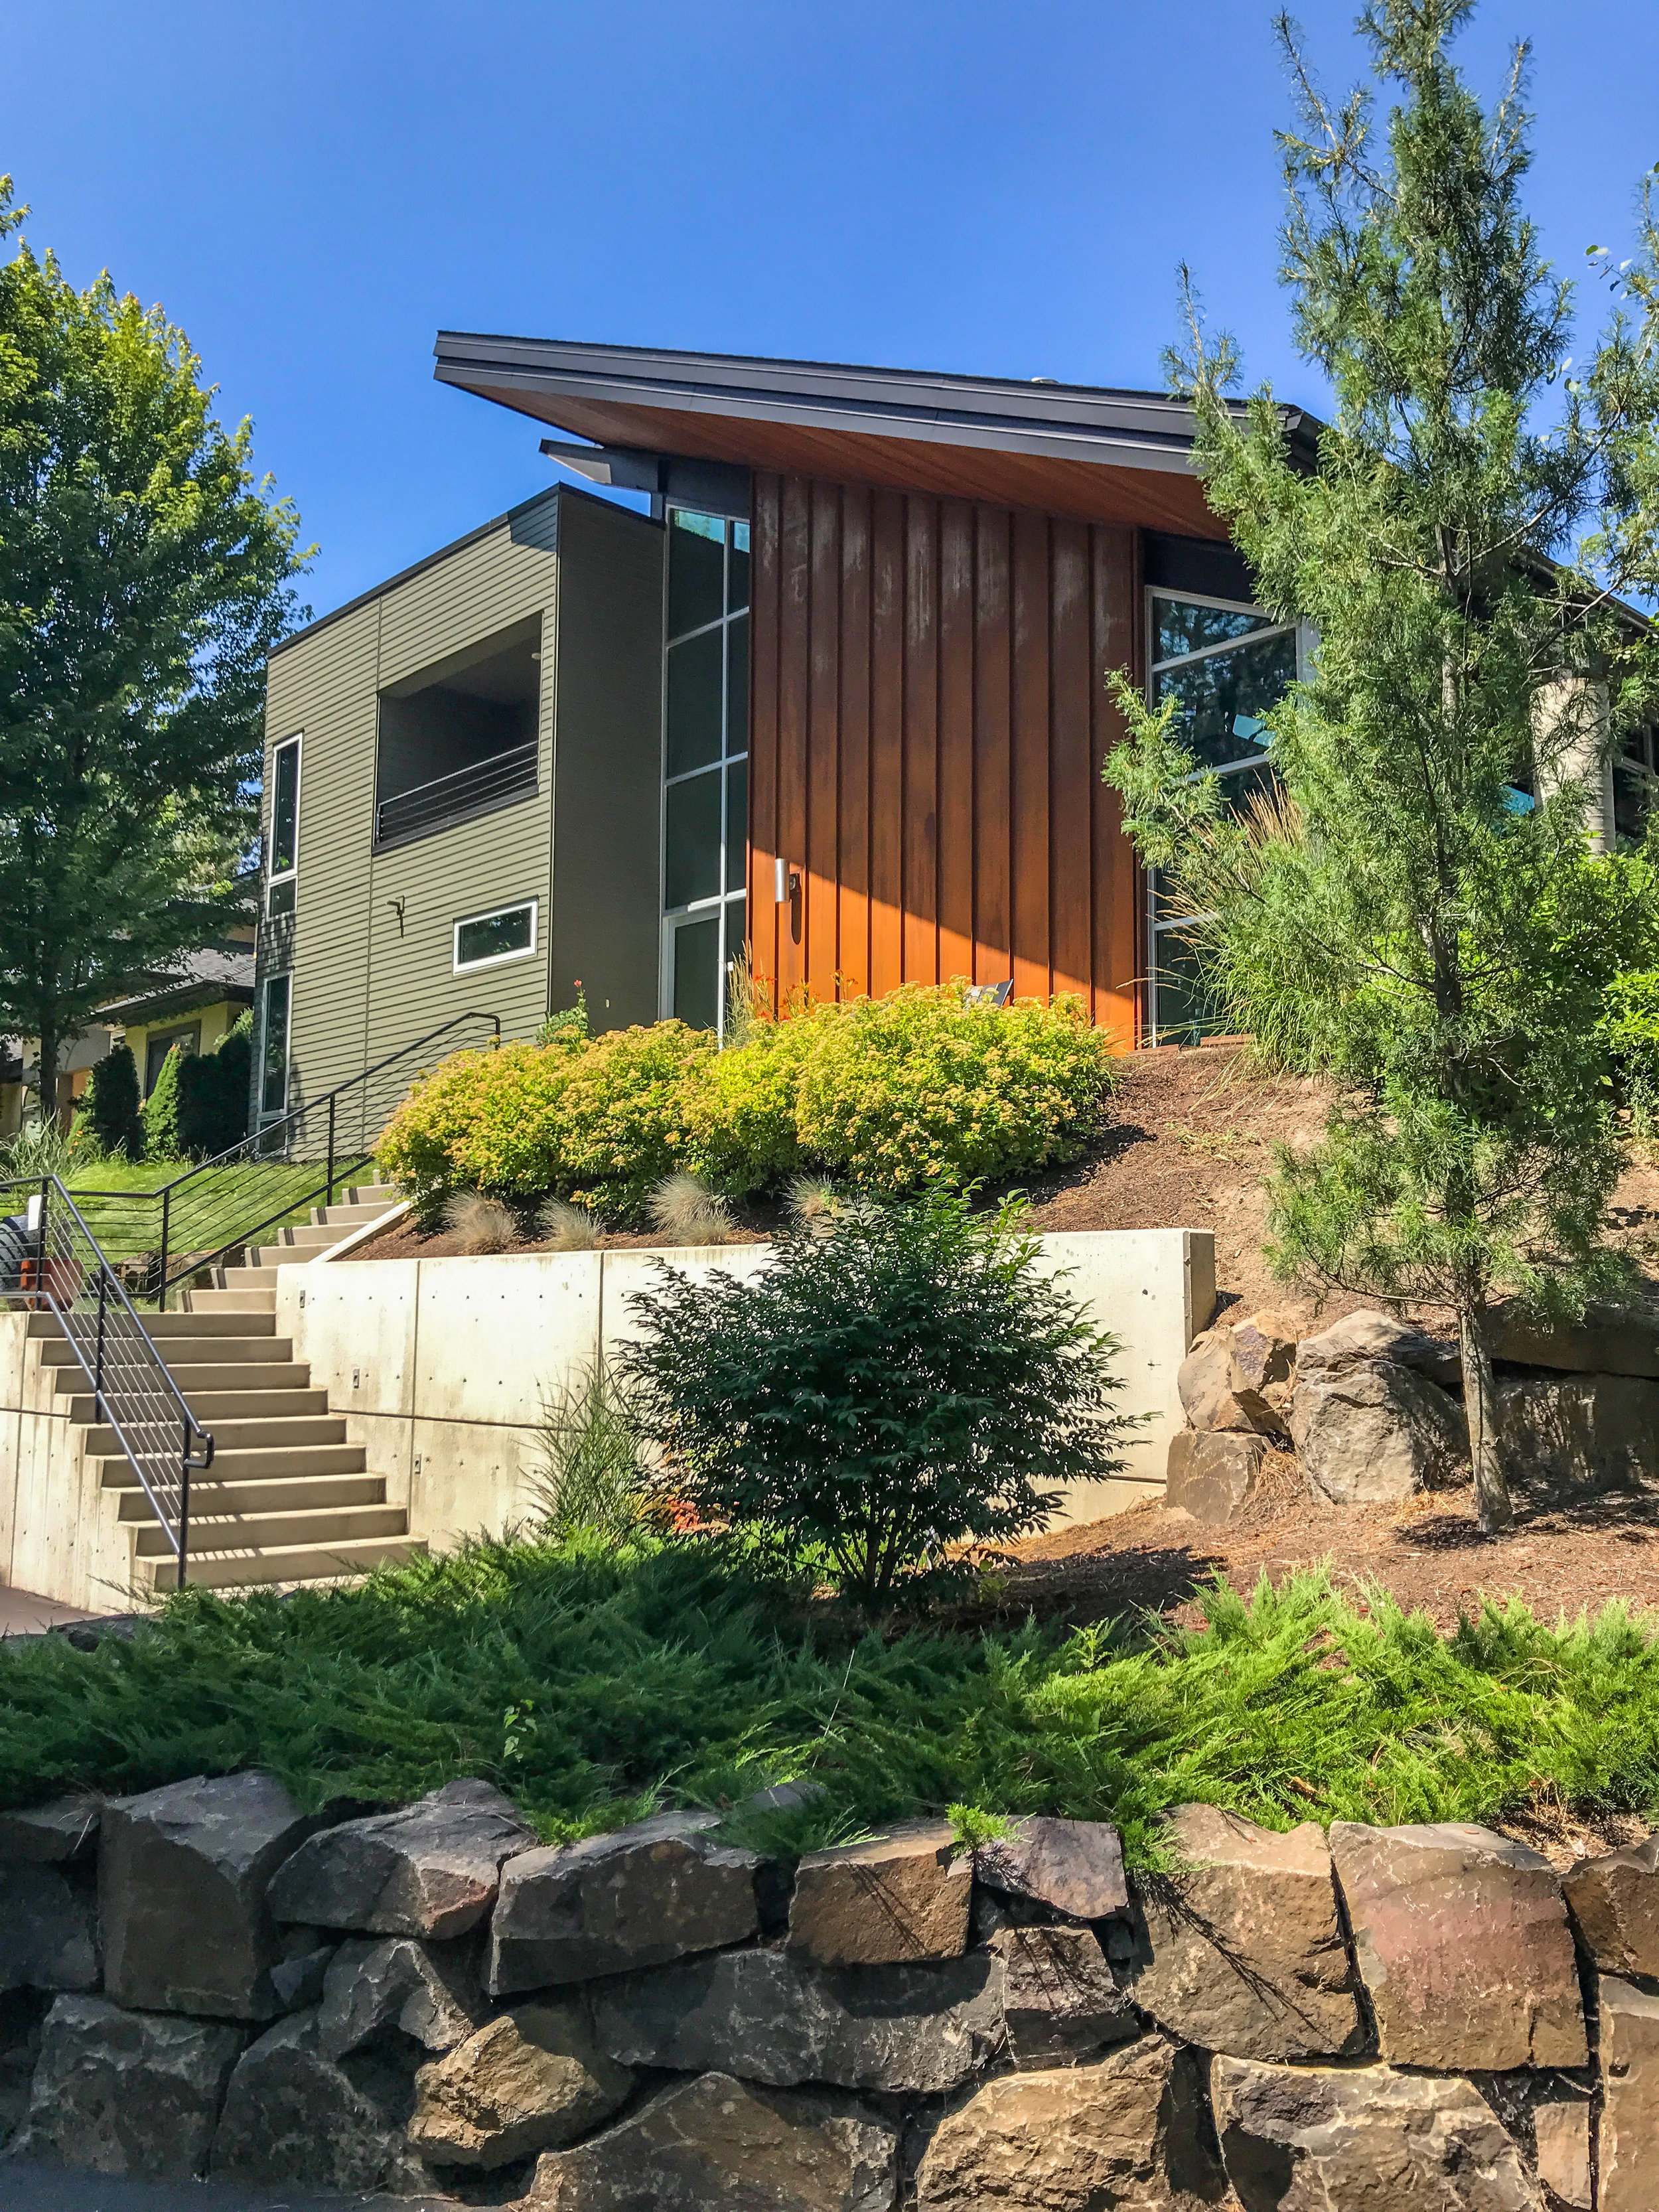 WOLFE RESIDENCE    SPOKANE, WASHINGTON    VIEW PROJECT